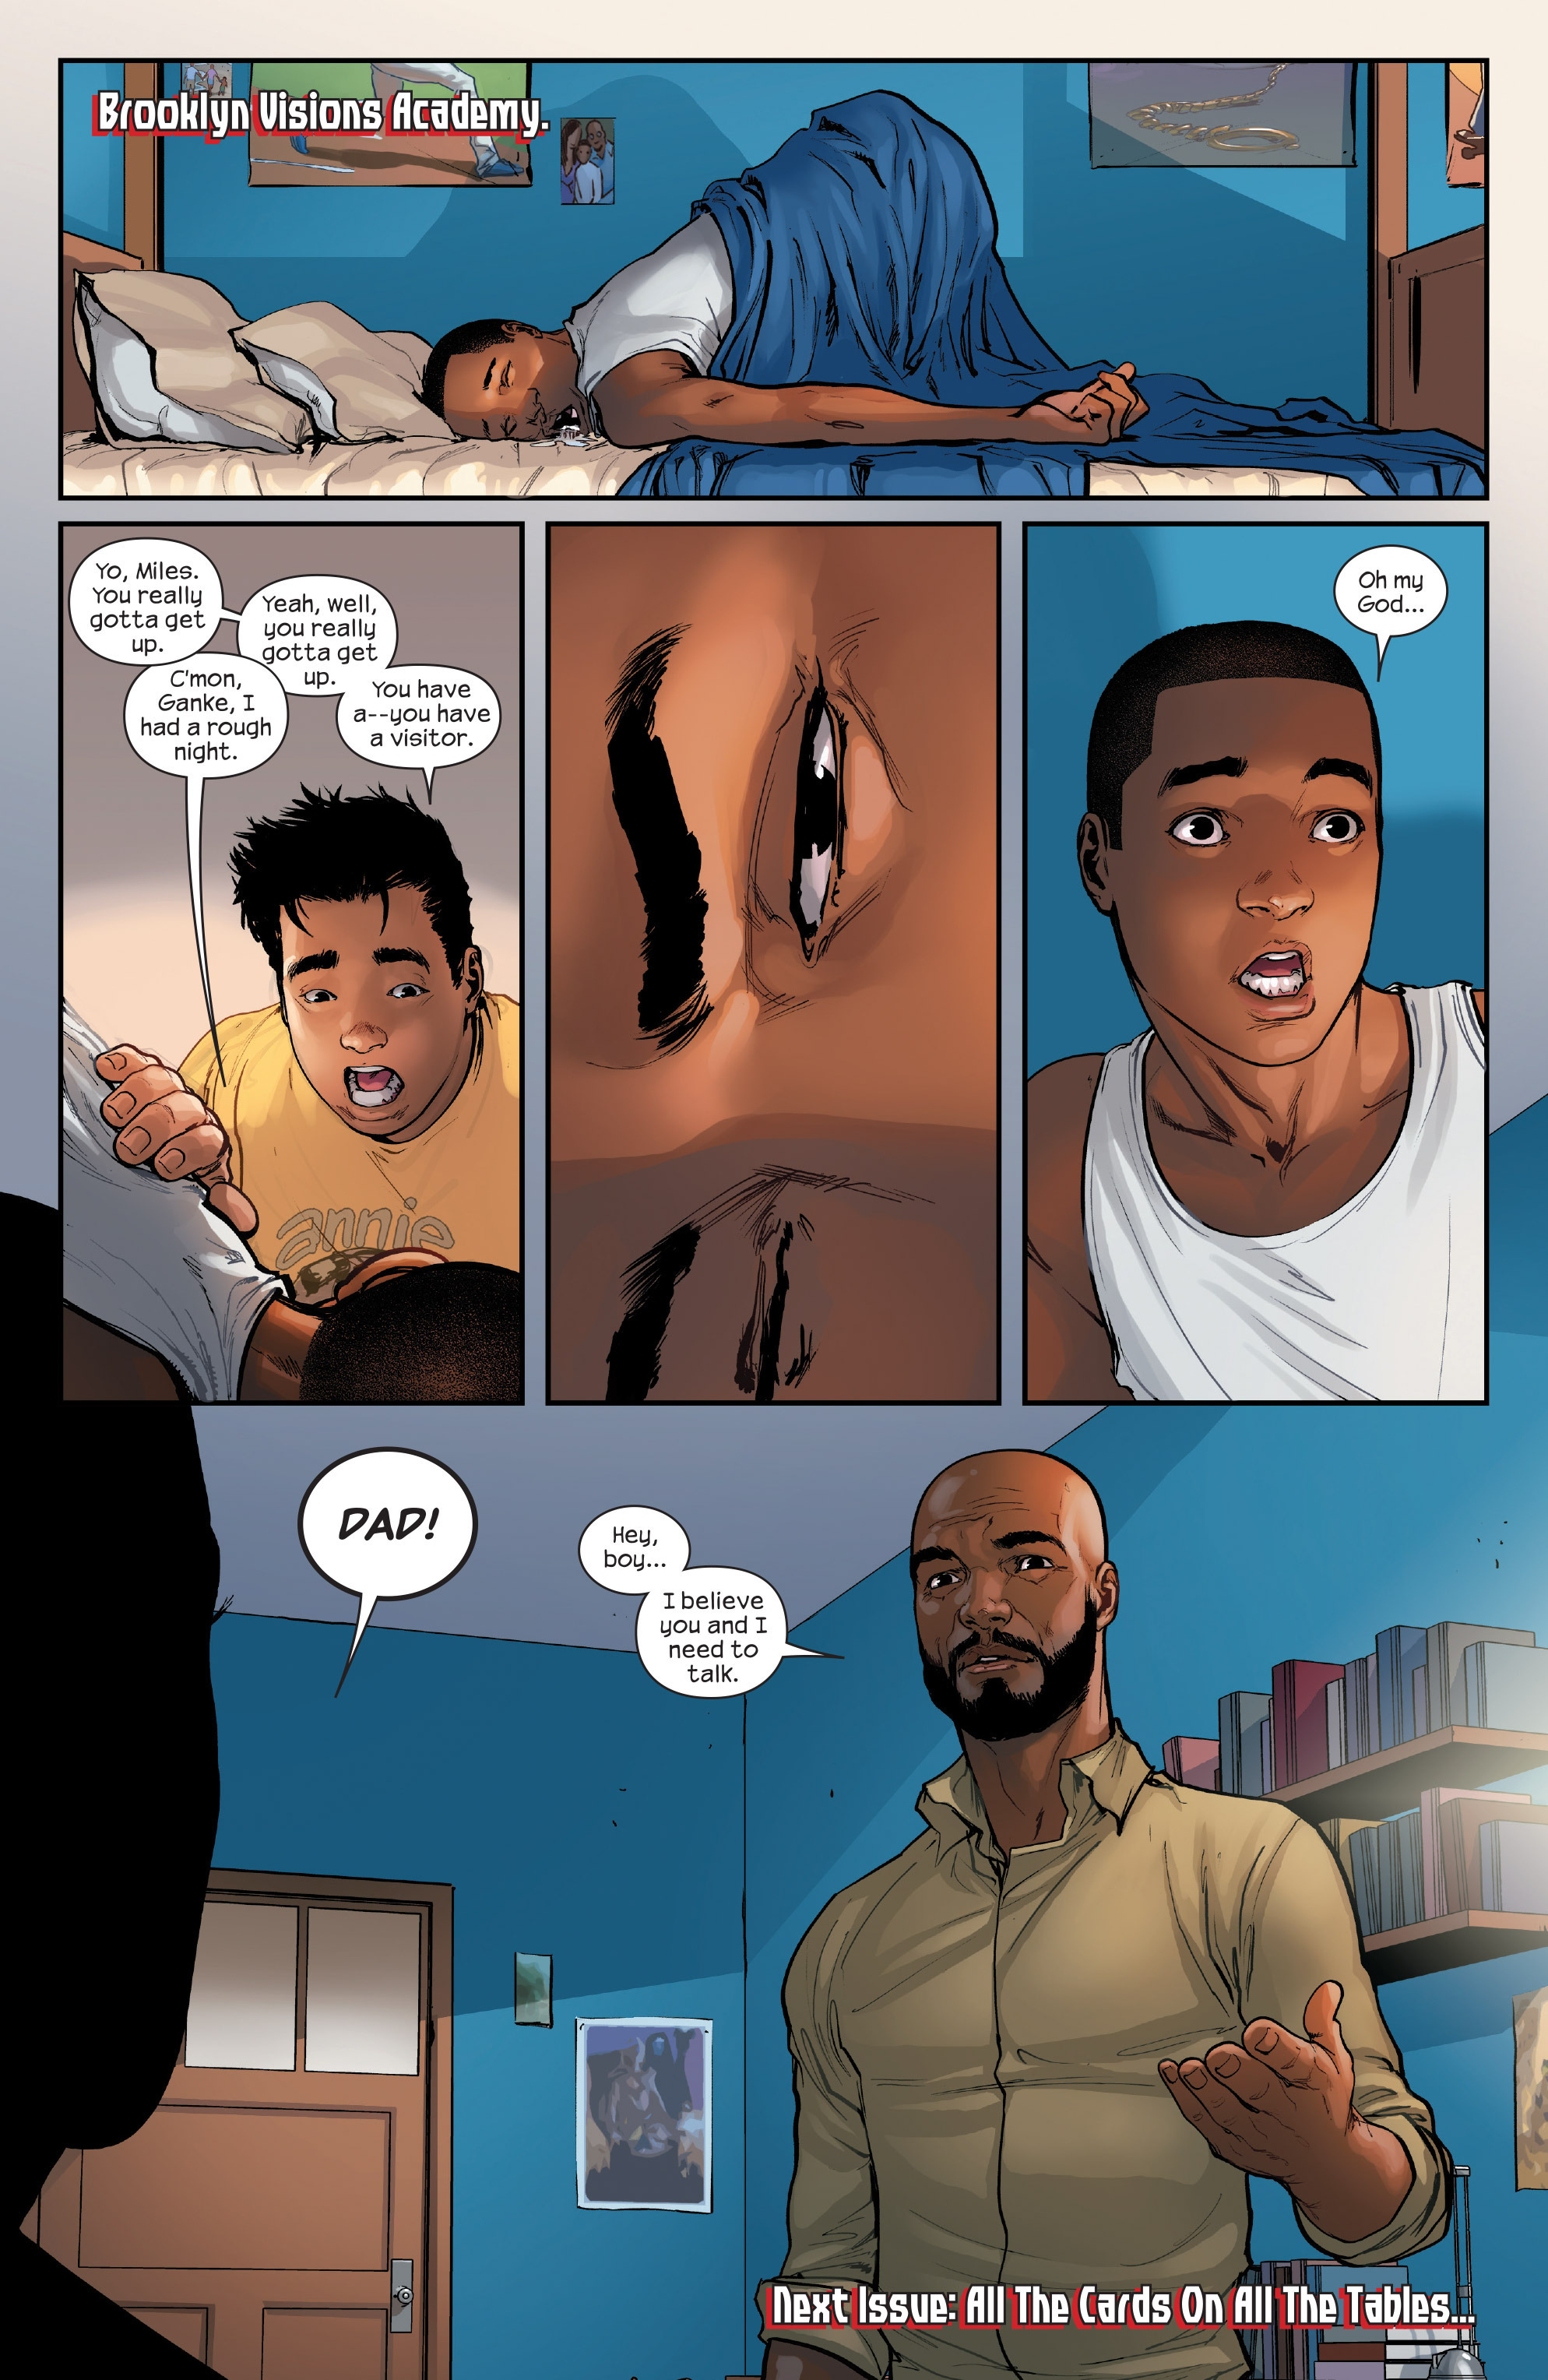 Miles morales dating